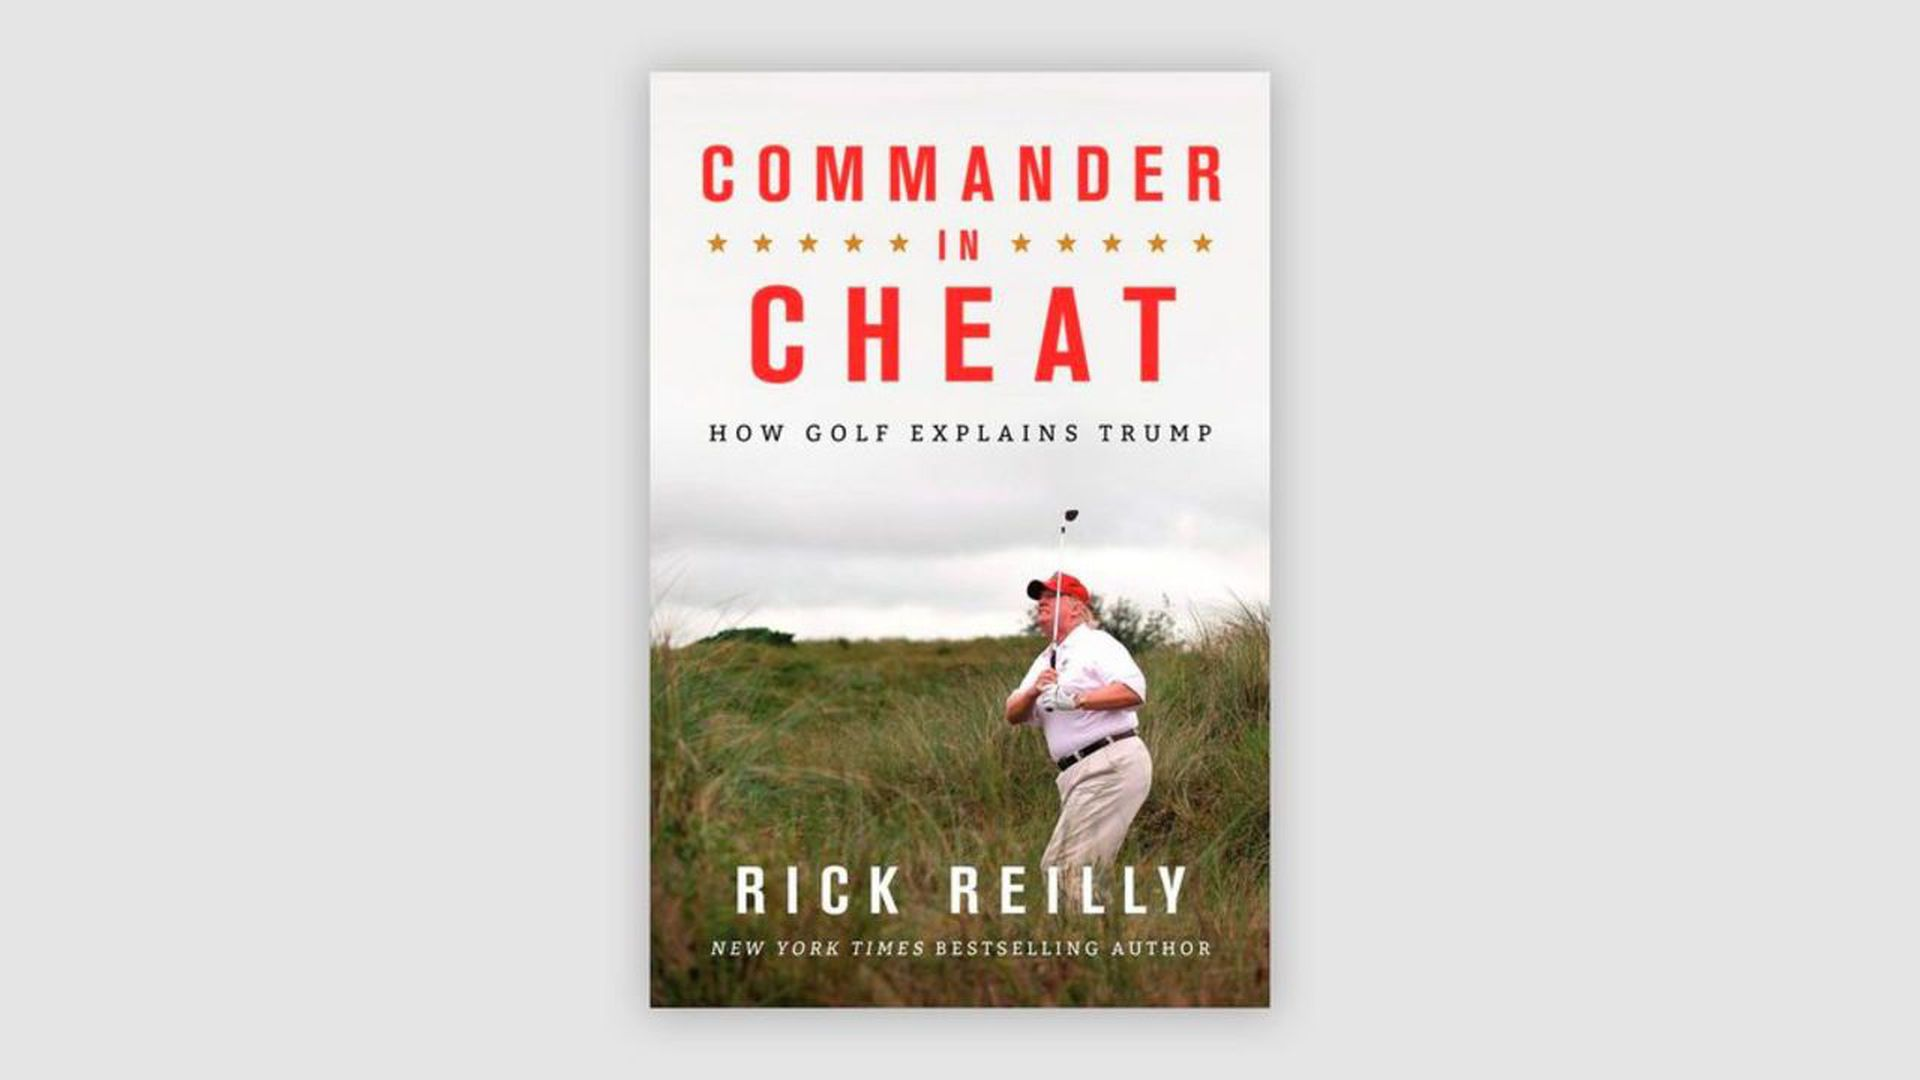 book cover of the book commander in cheat